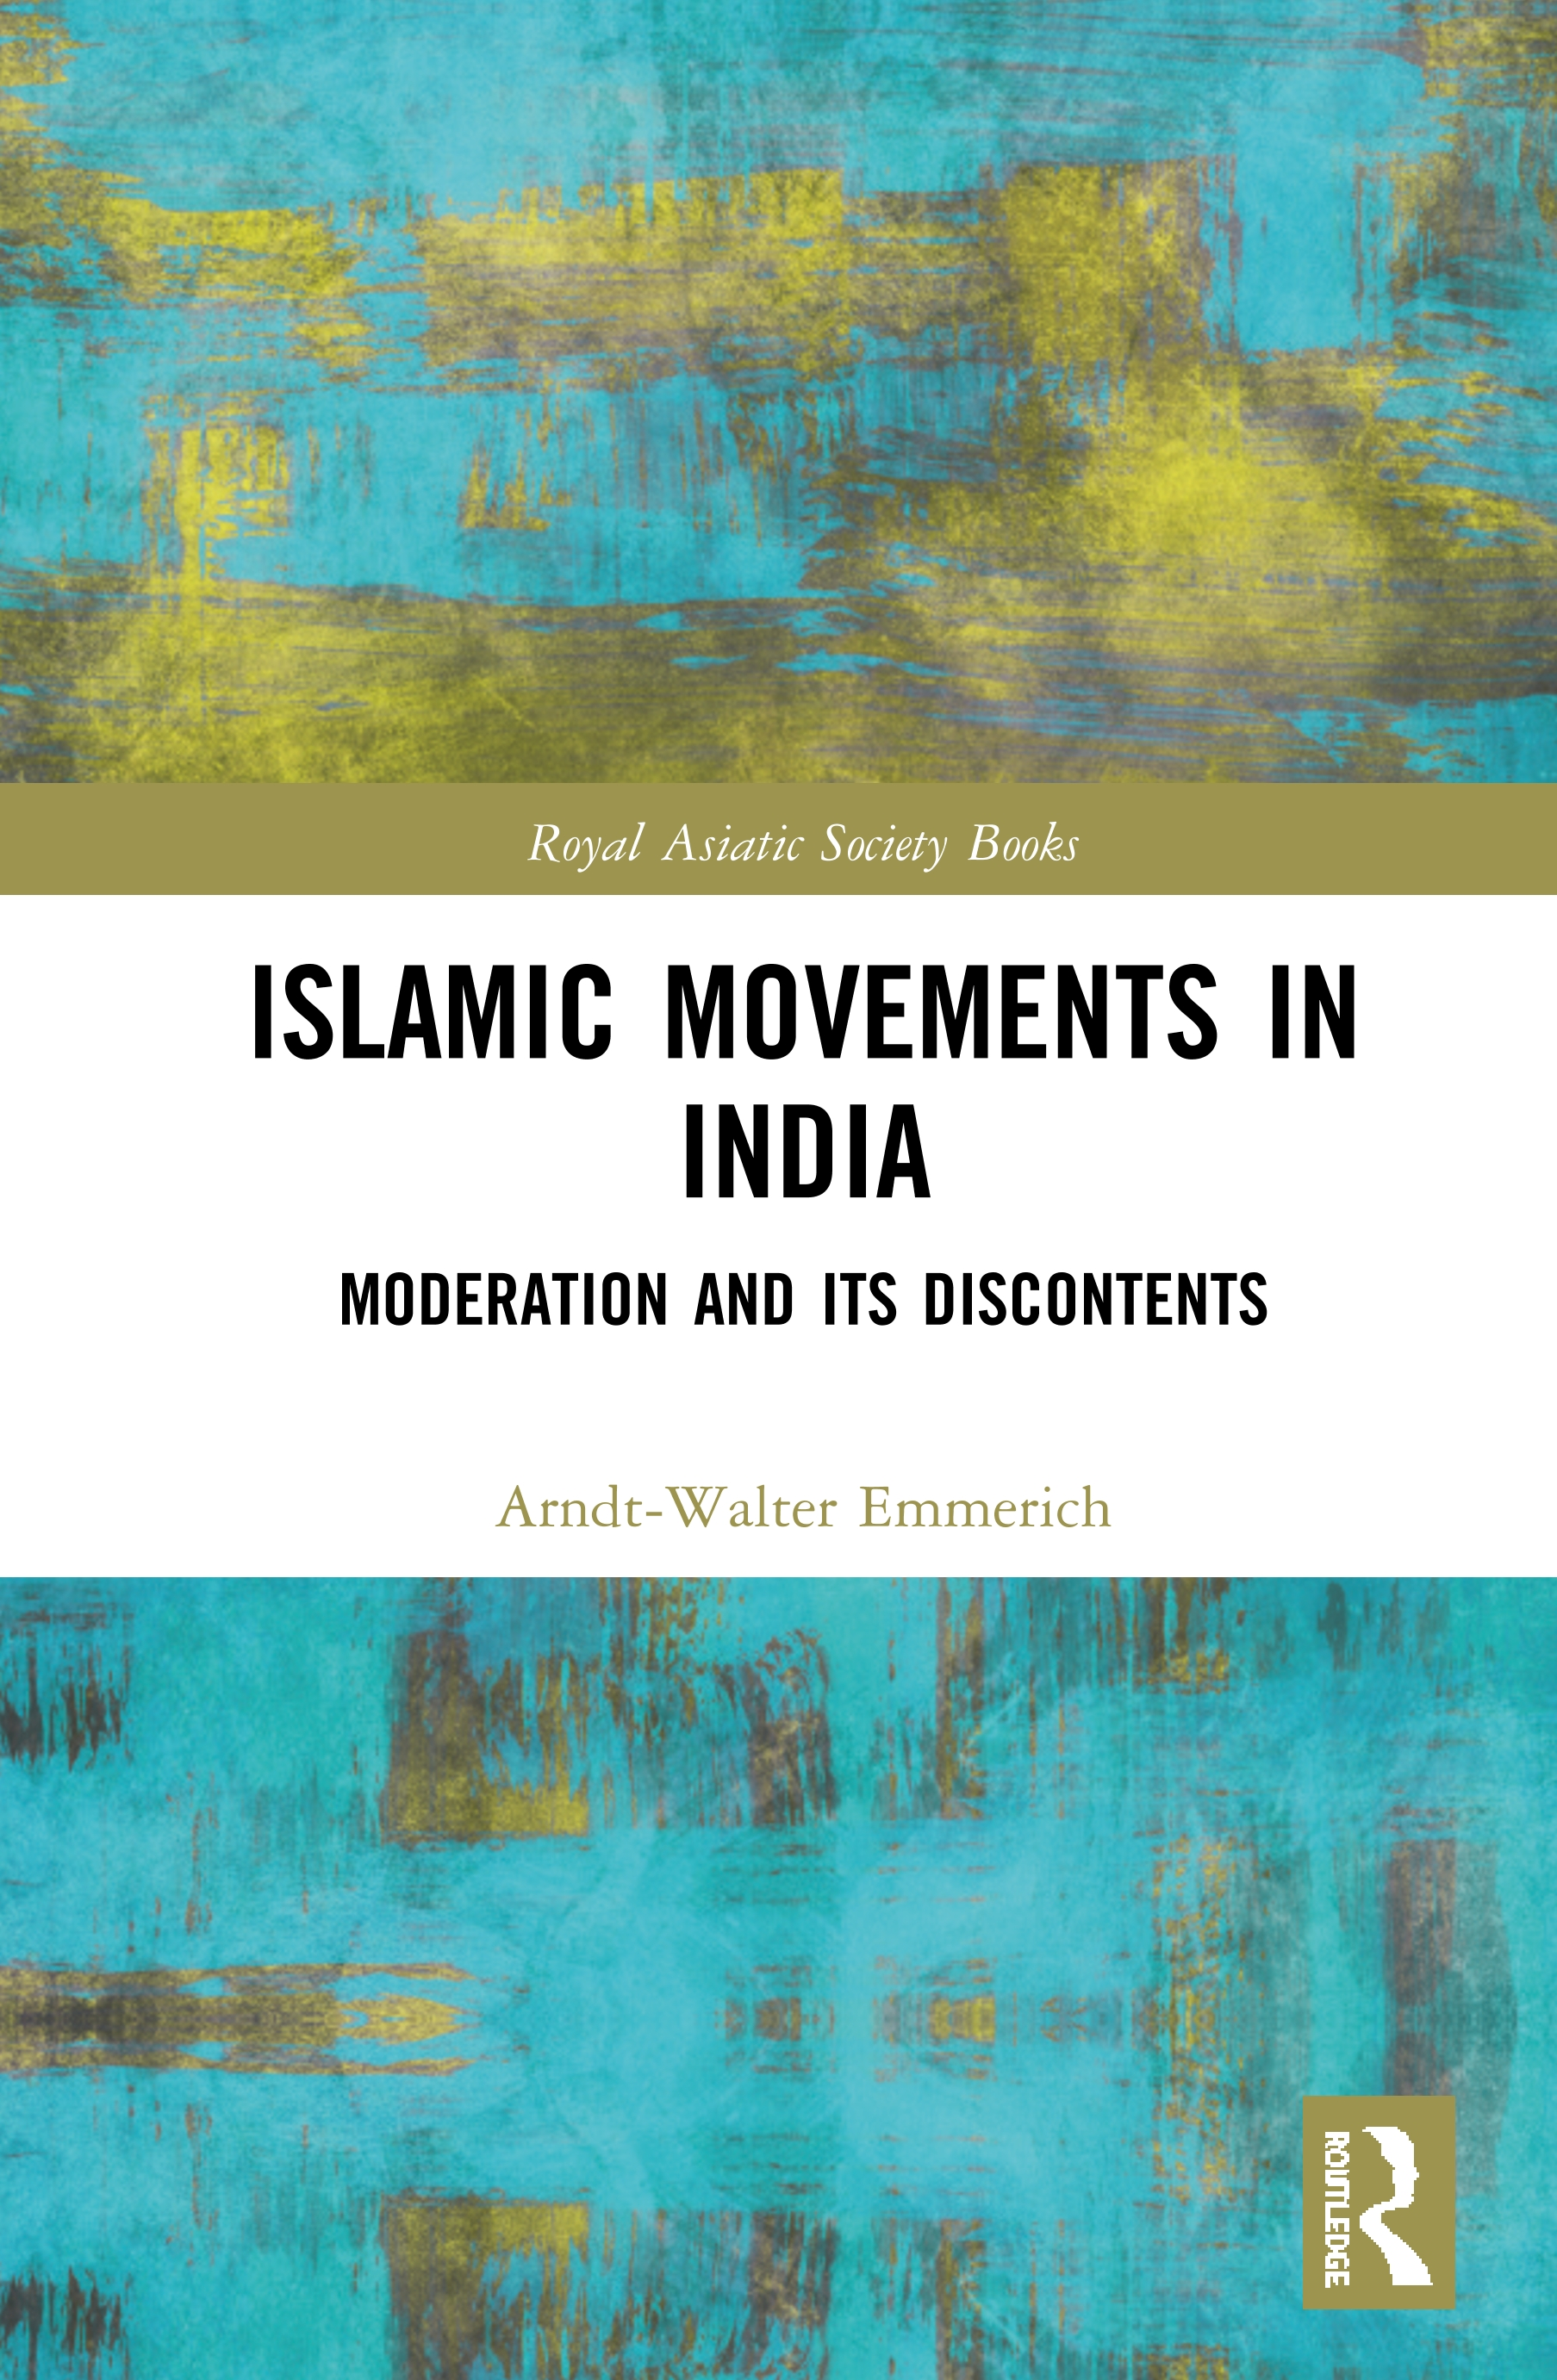 Islamic Movements in India: Moderation and its Discontents book cover